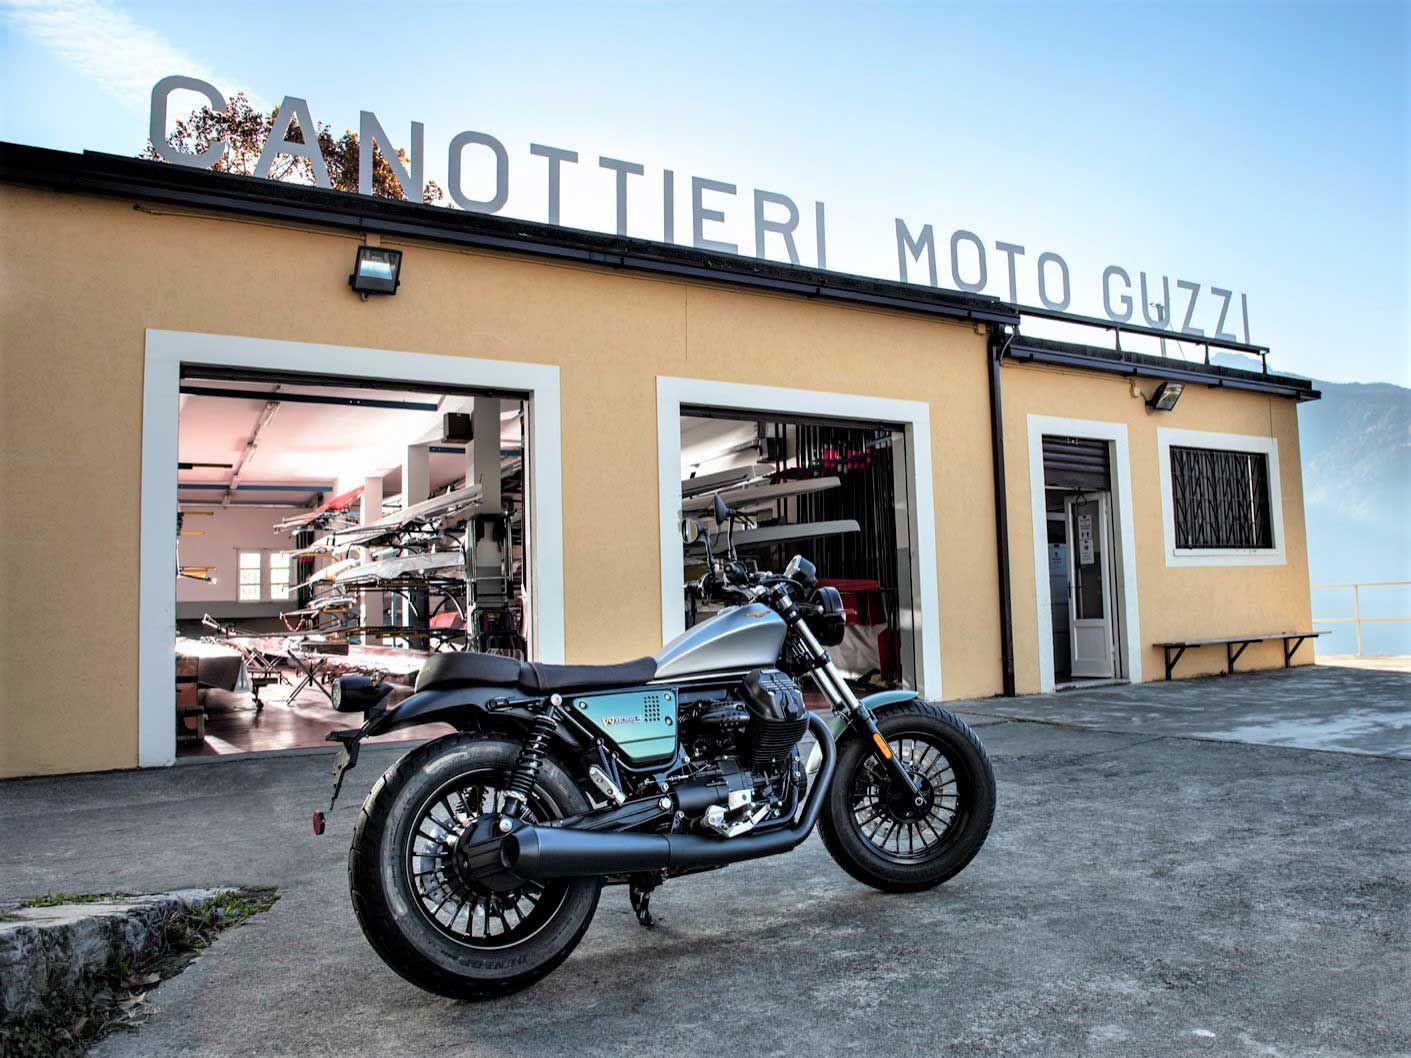 The V9 Bobber is looking forward to another century of cruising.